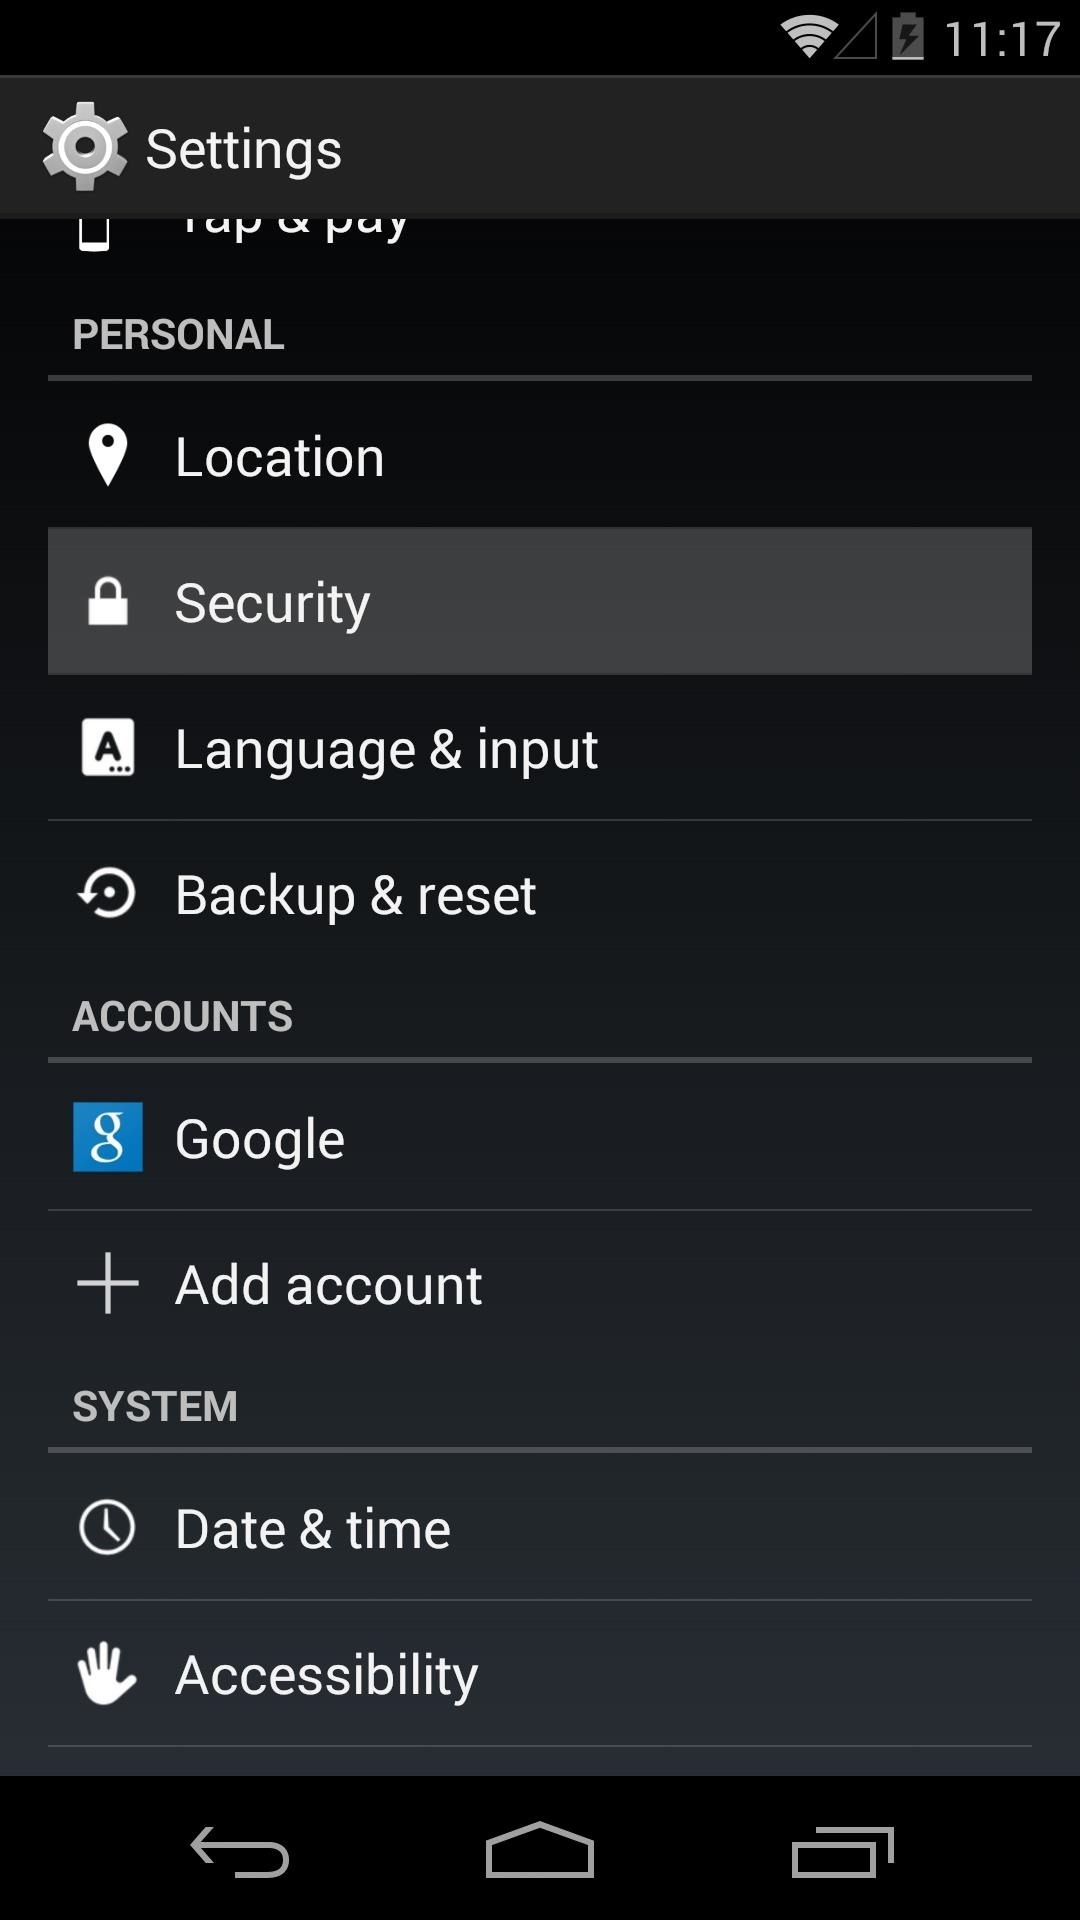 How to Root a Nexus 4 or Nexus 5 in Under a Minute